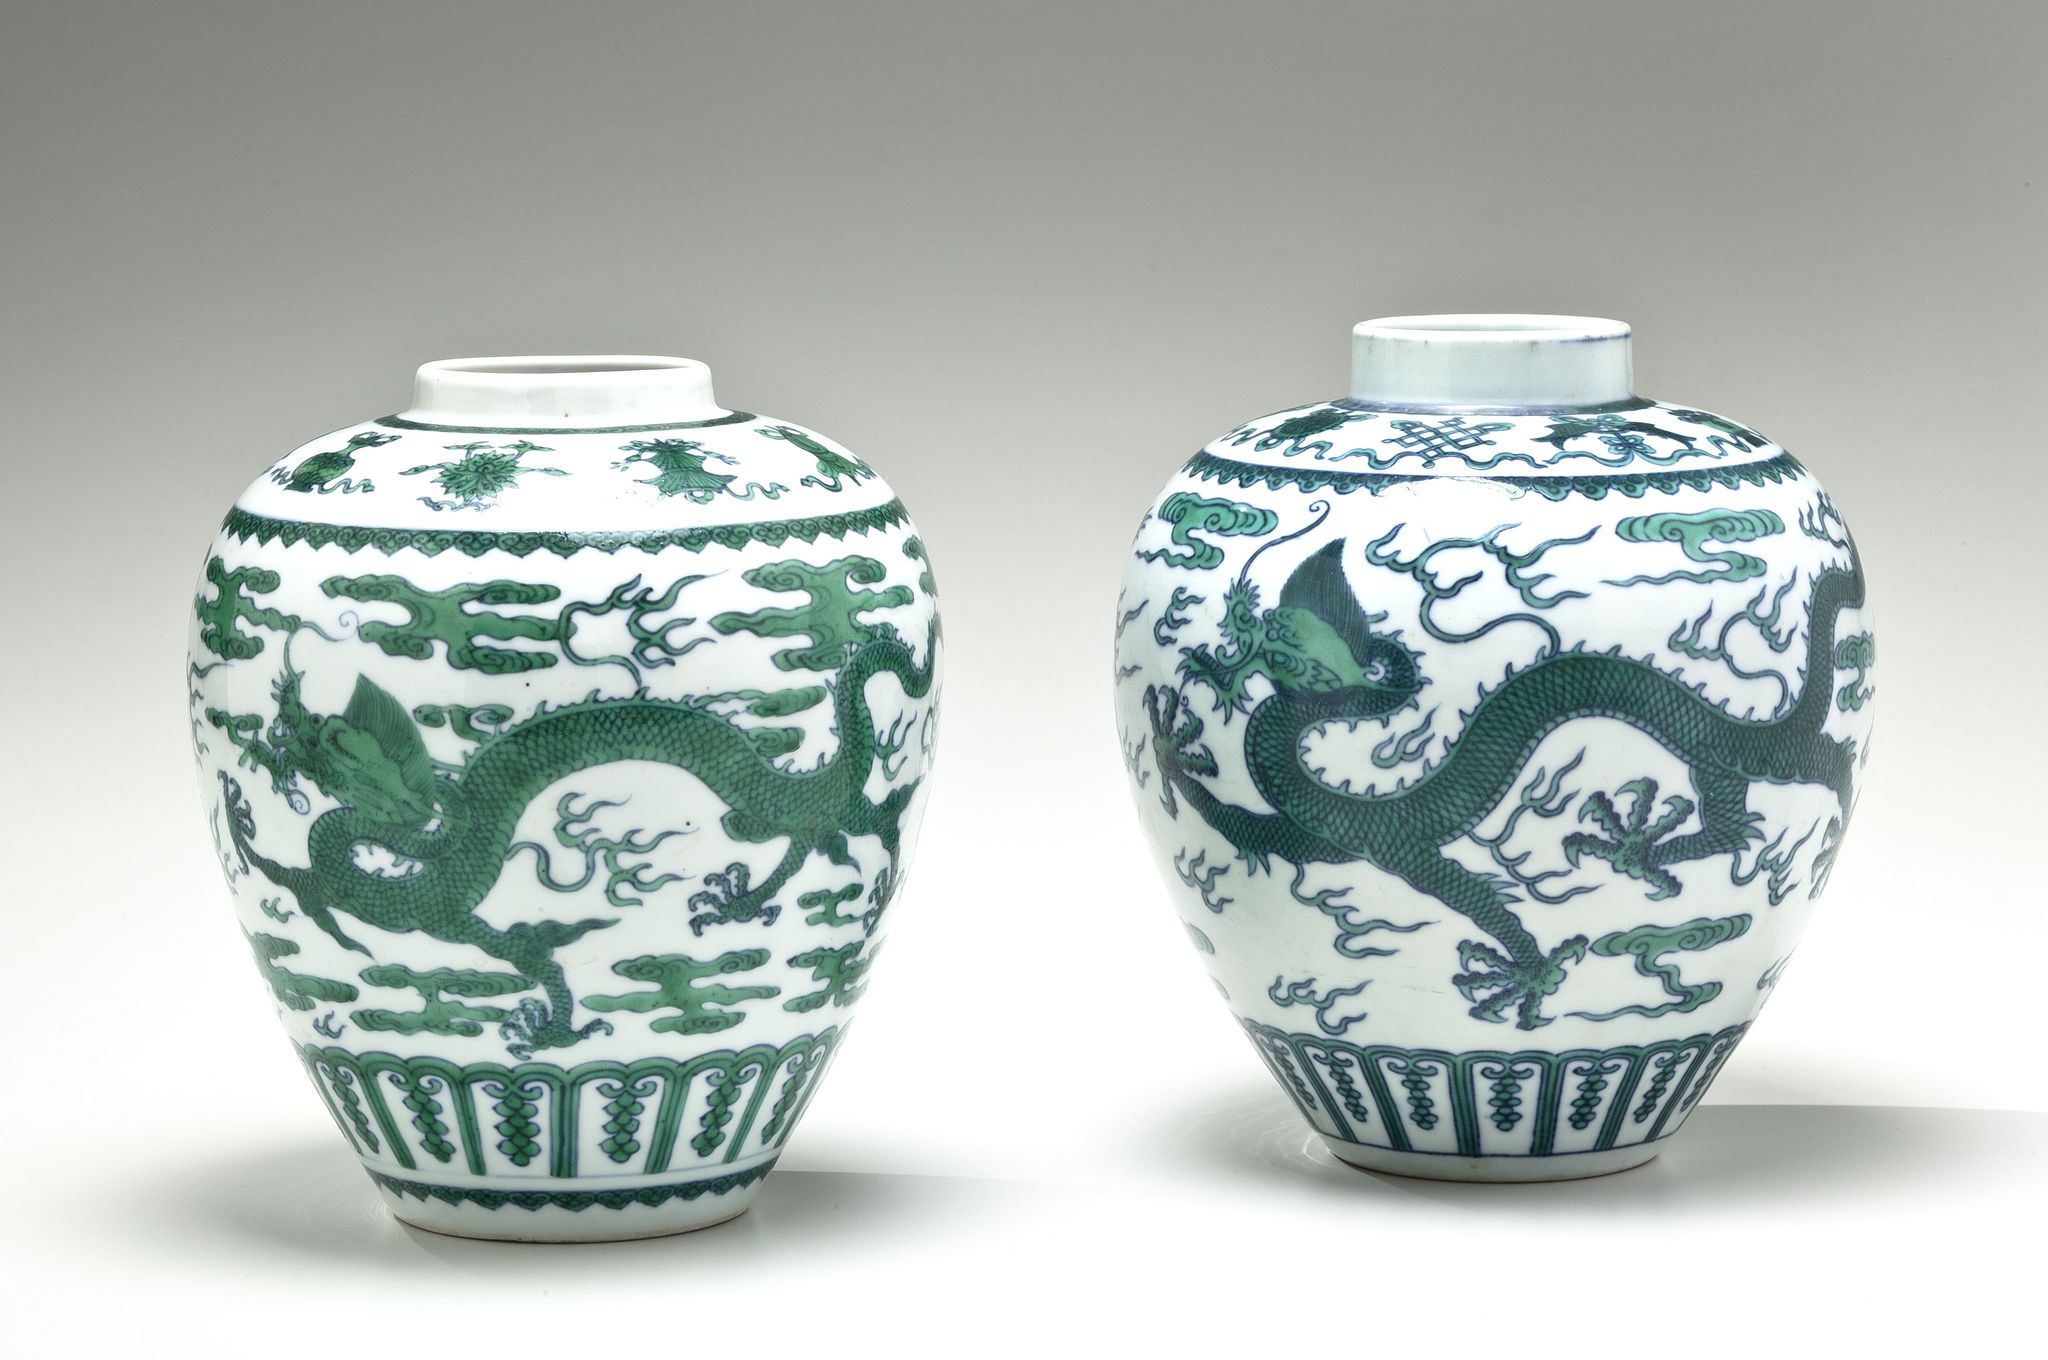 Two green and white dragon vases china 17th century 18th century two green and white dragon vases china 17th century 18th century qing reviewsmspy